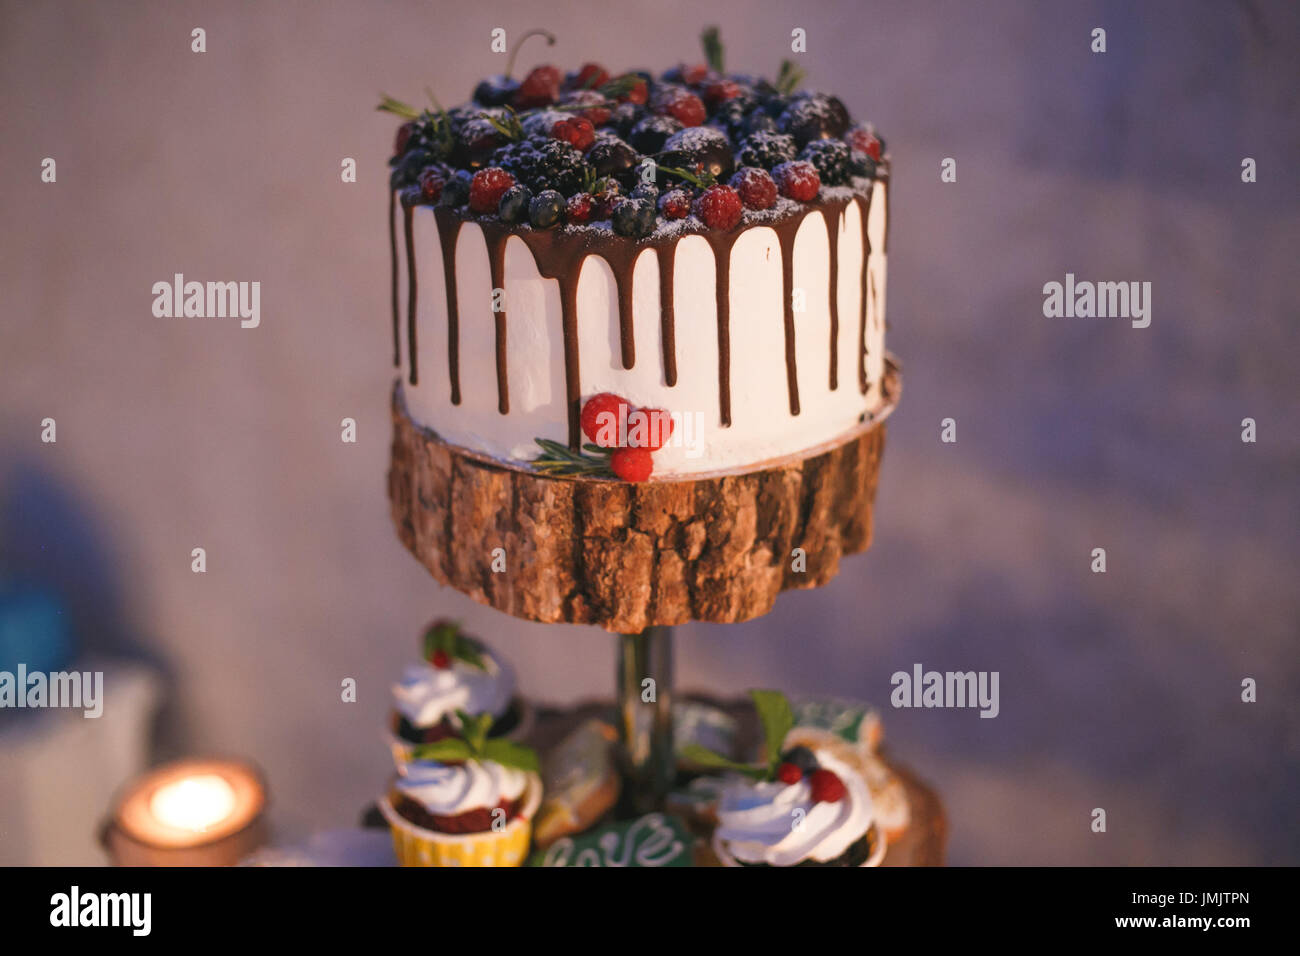 Cake and cupcakes with berries on a wooden shelf in candle light. - Stock Image